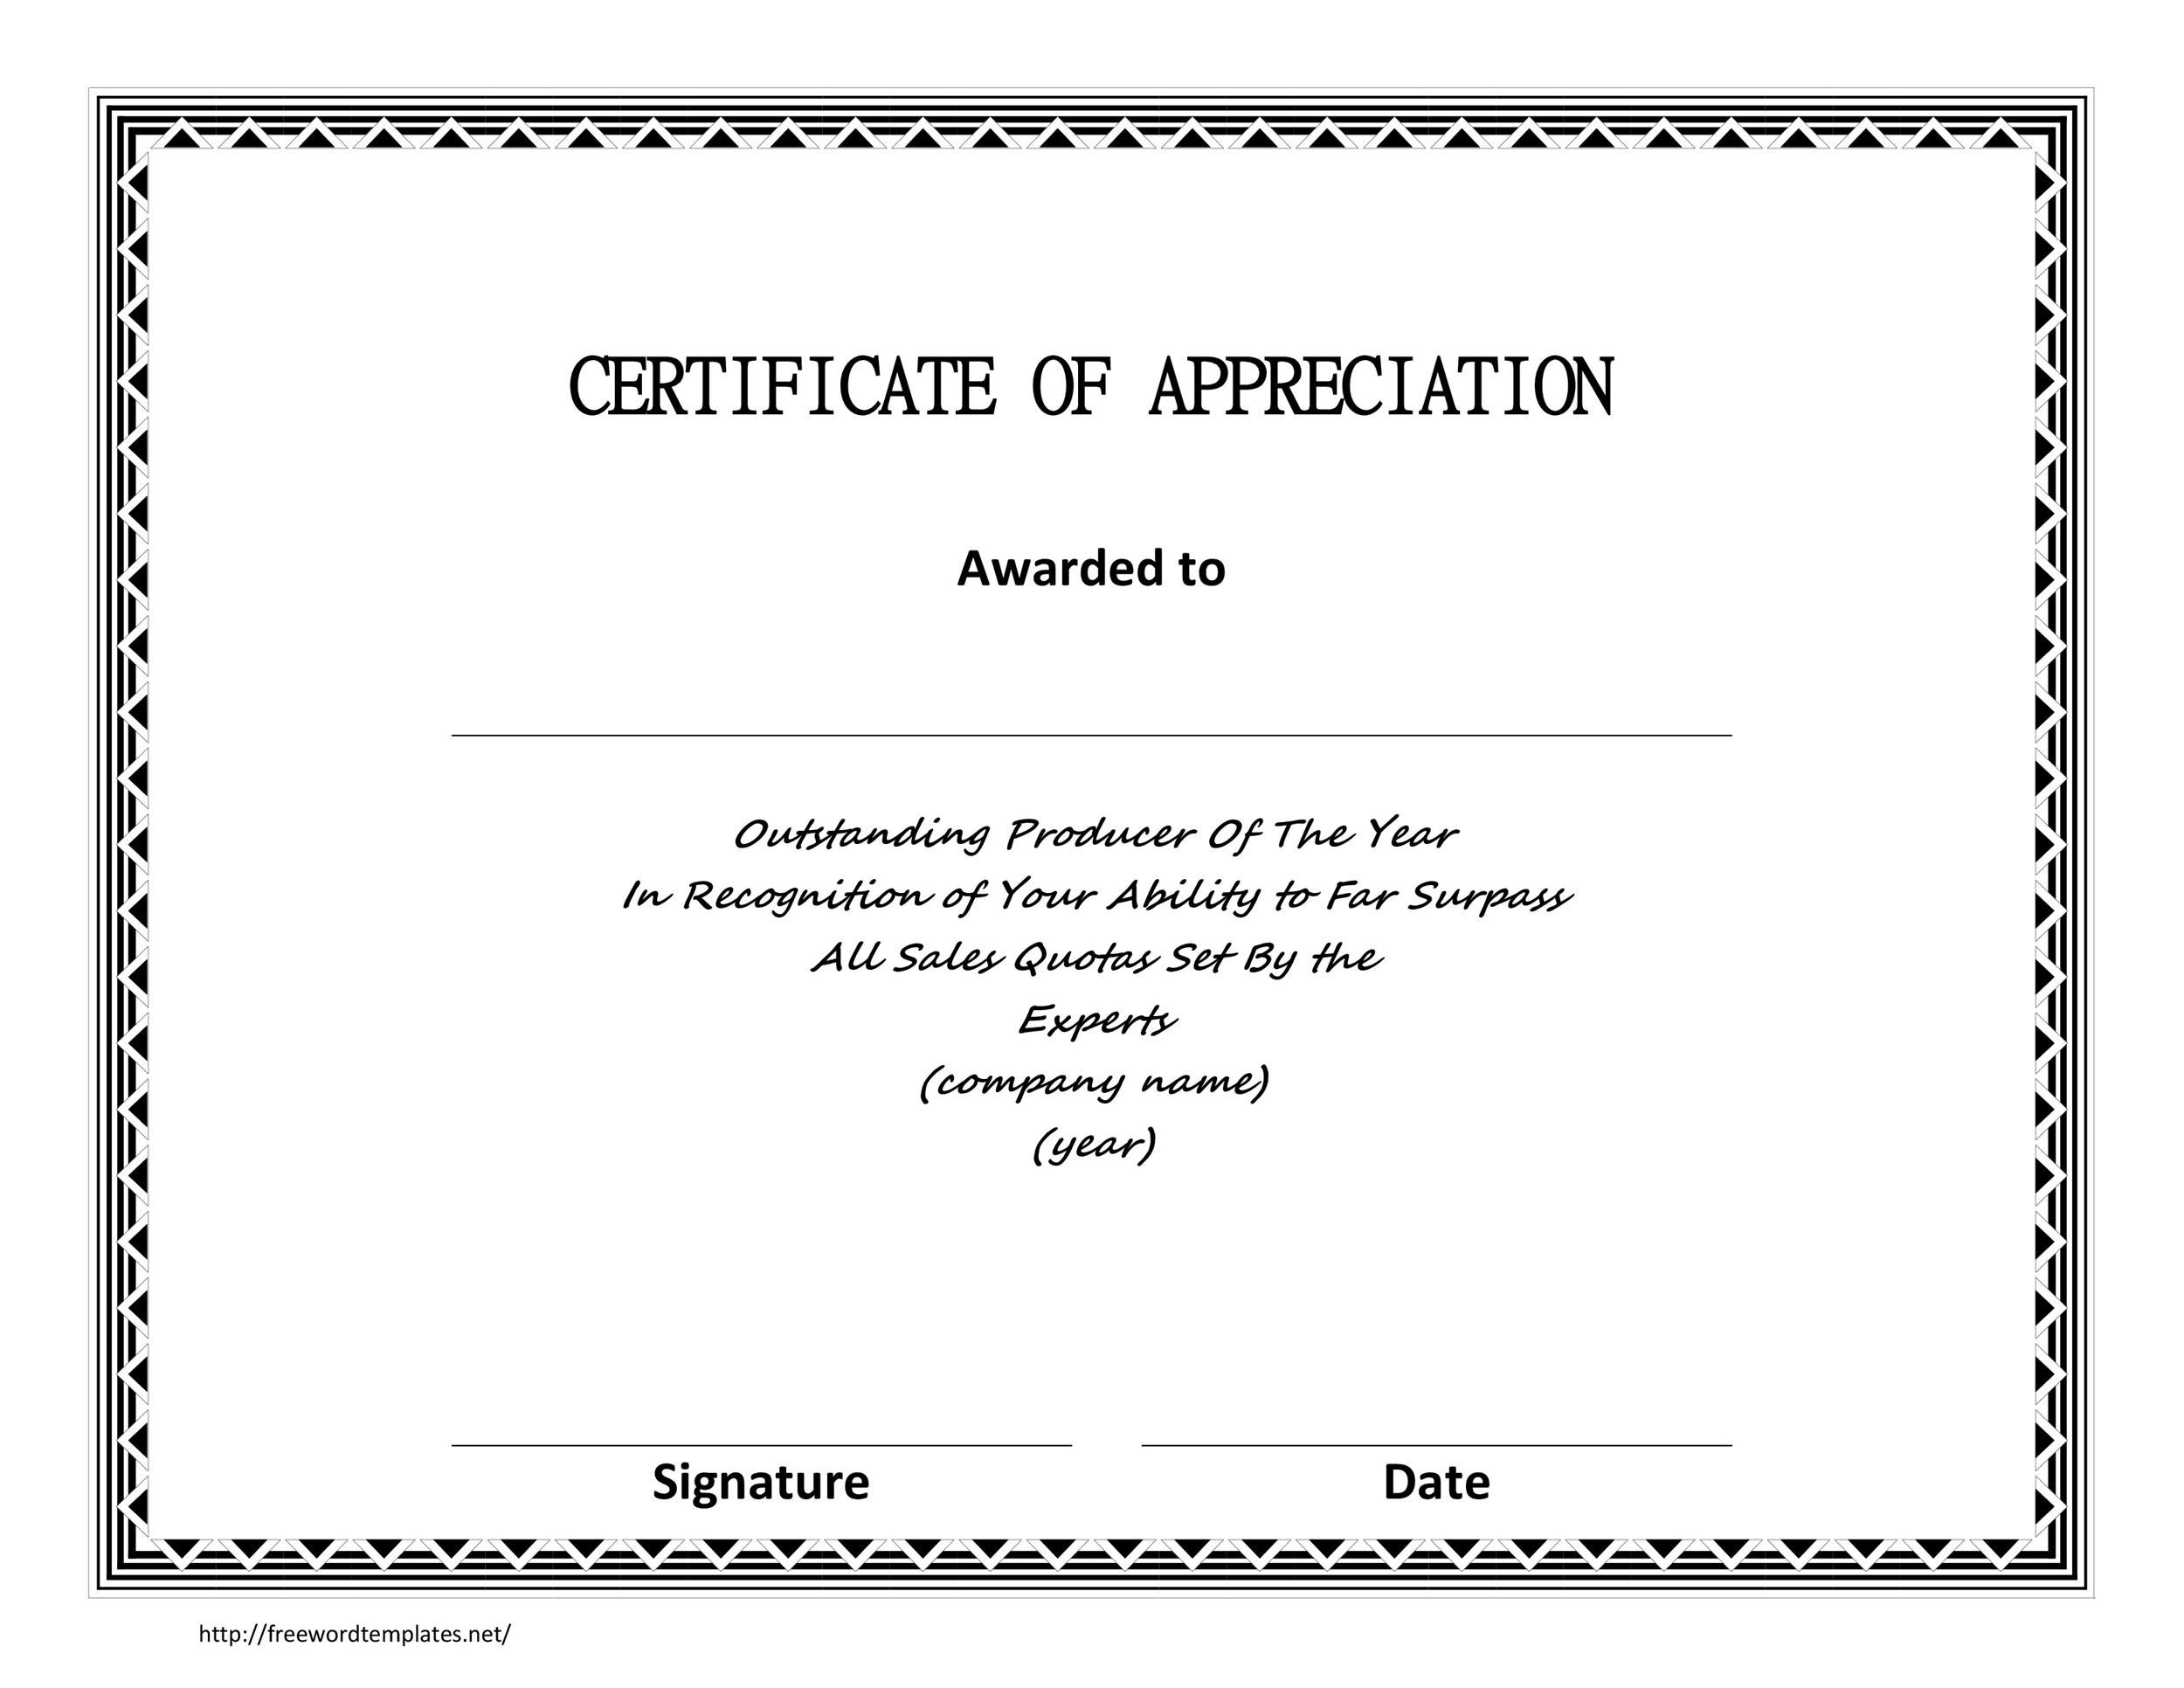 printable certificates of appreciation  30 Free Certificate of Appreciation Templates and Letters